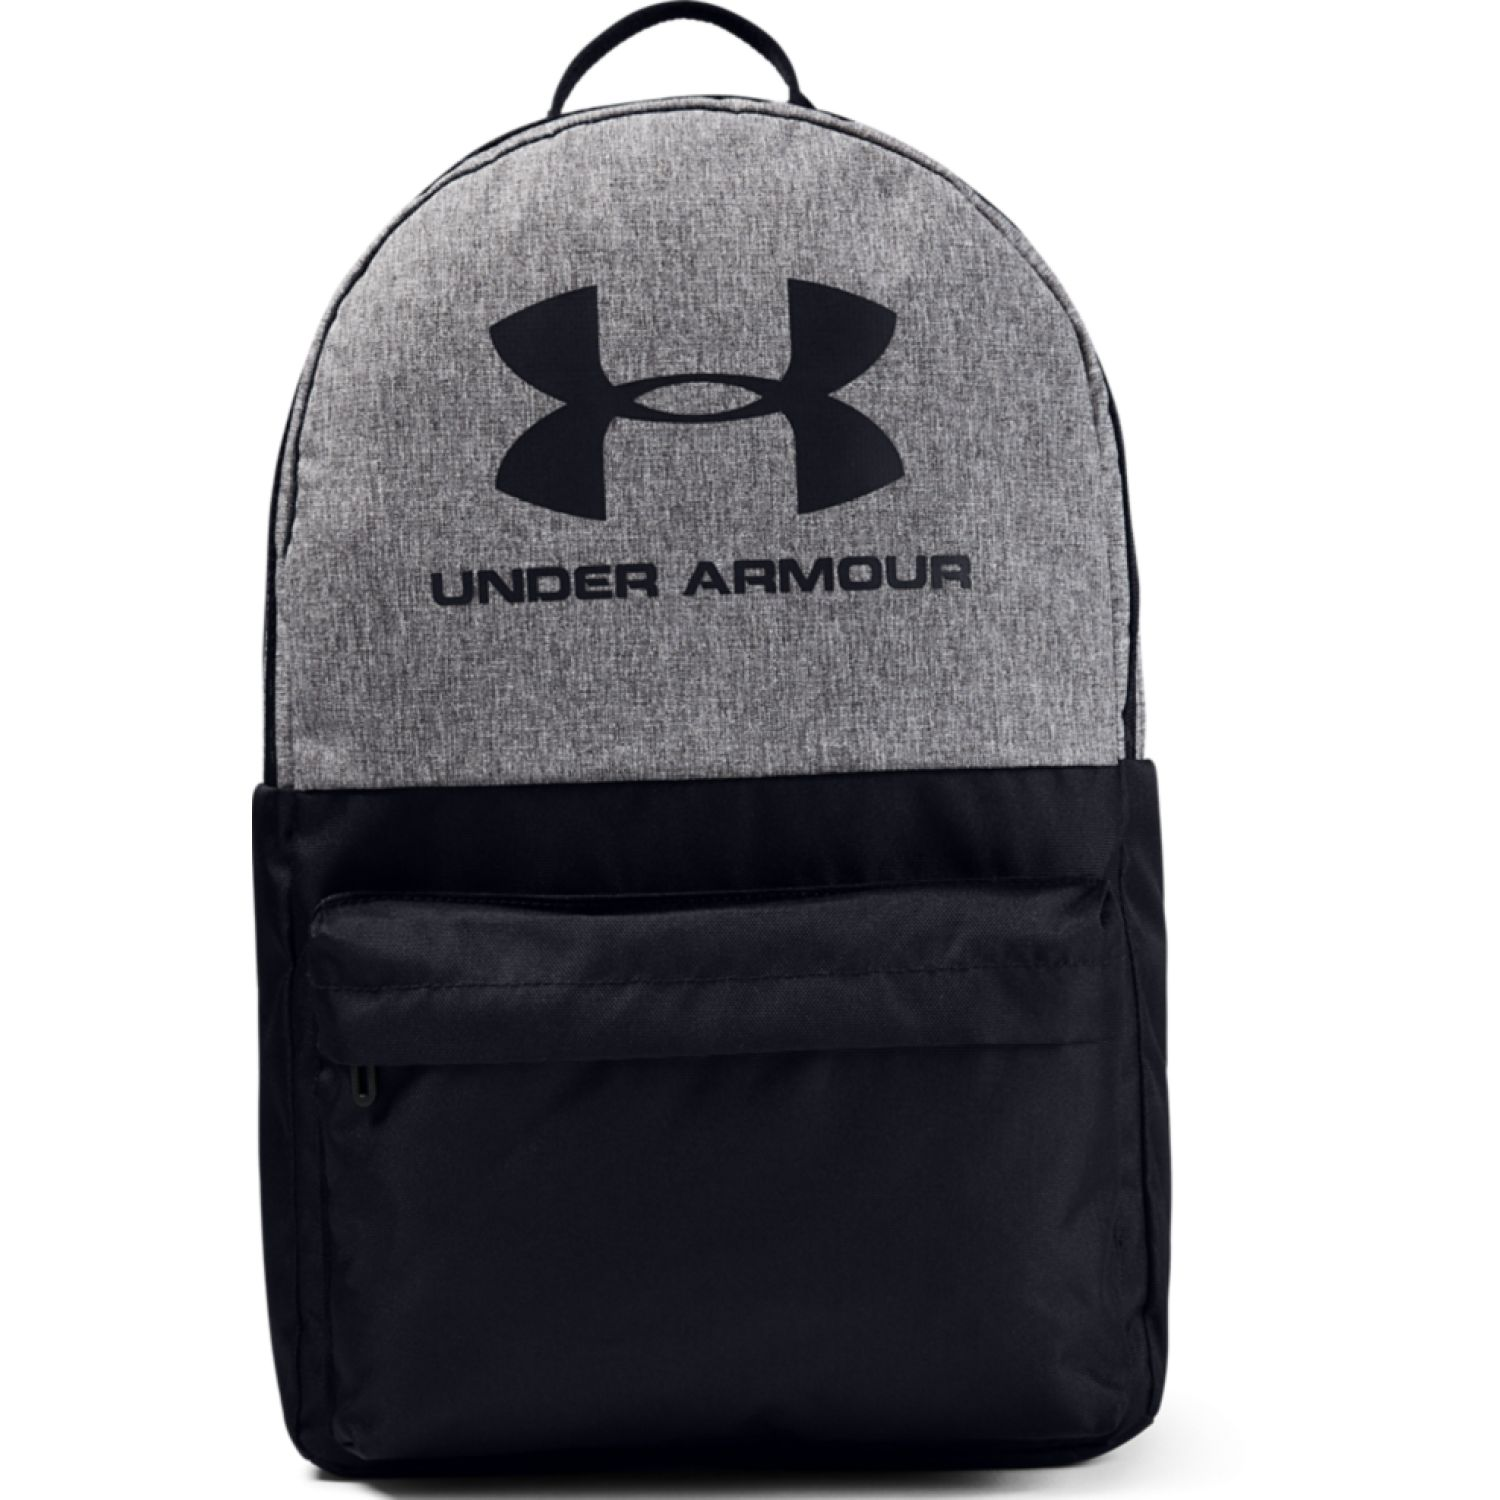 Under Armour Ua Loudon Backpack NEGRO / GRIS Mochilas Multipropósitos